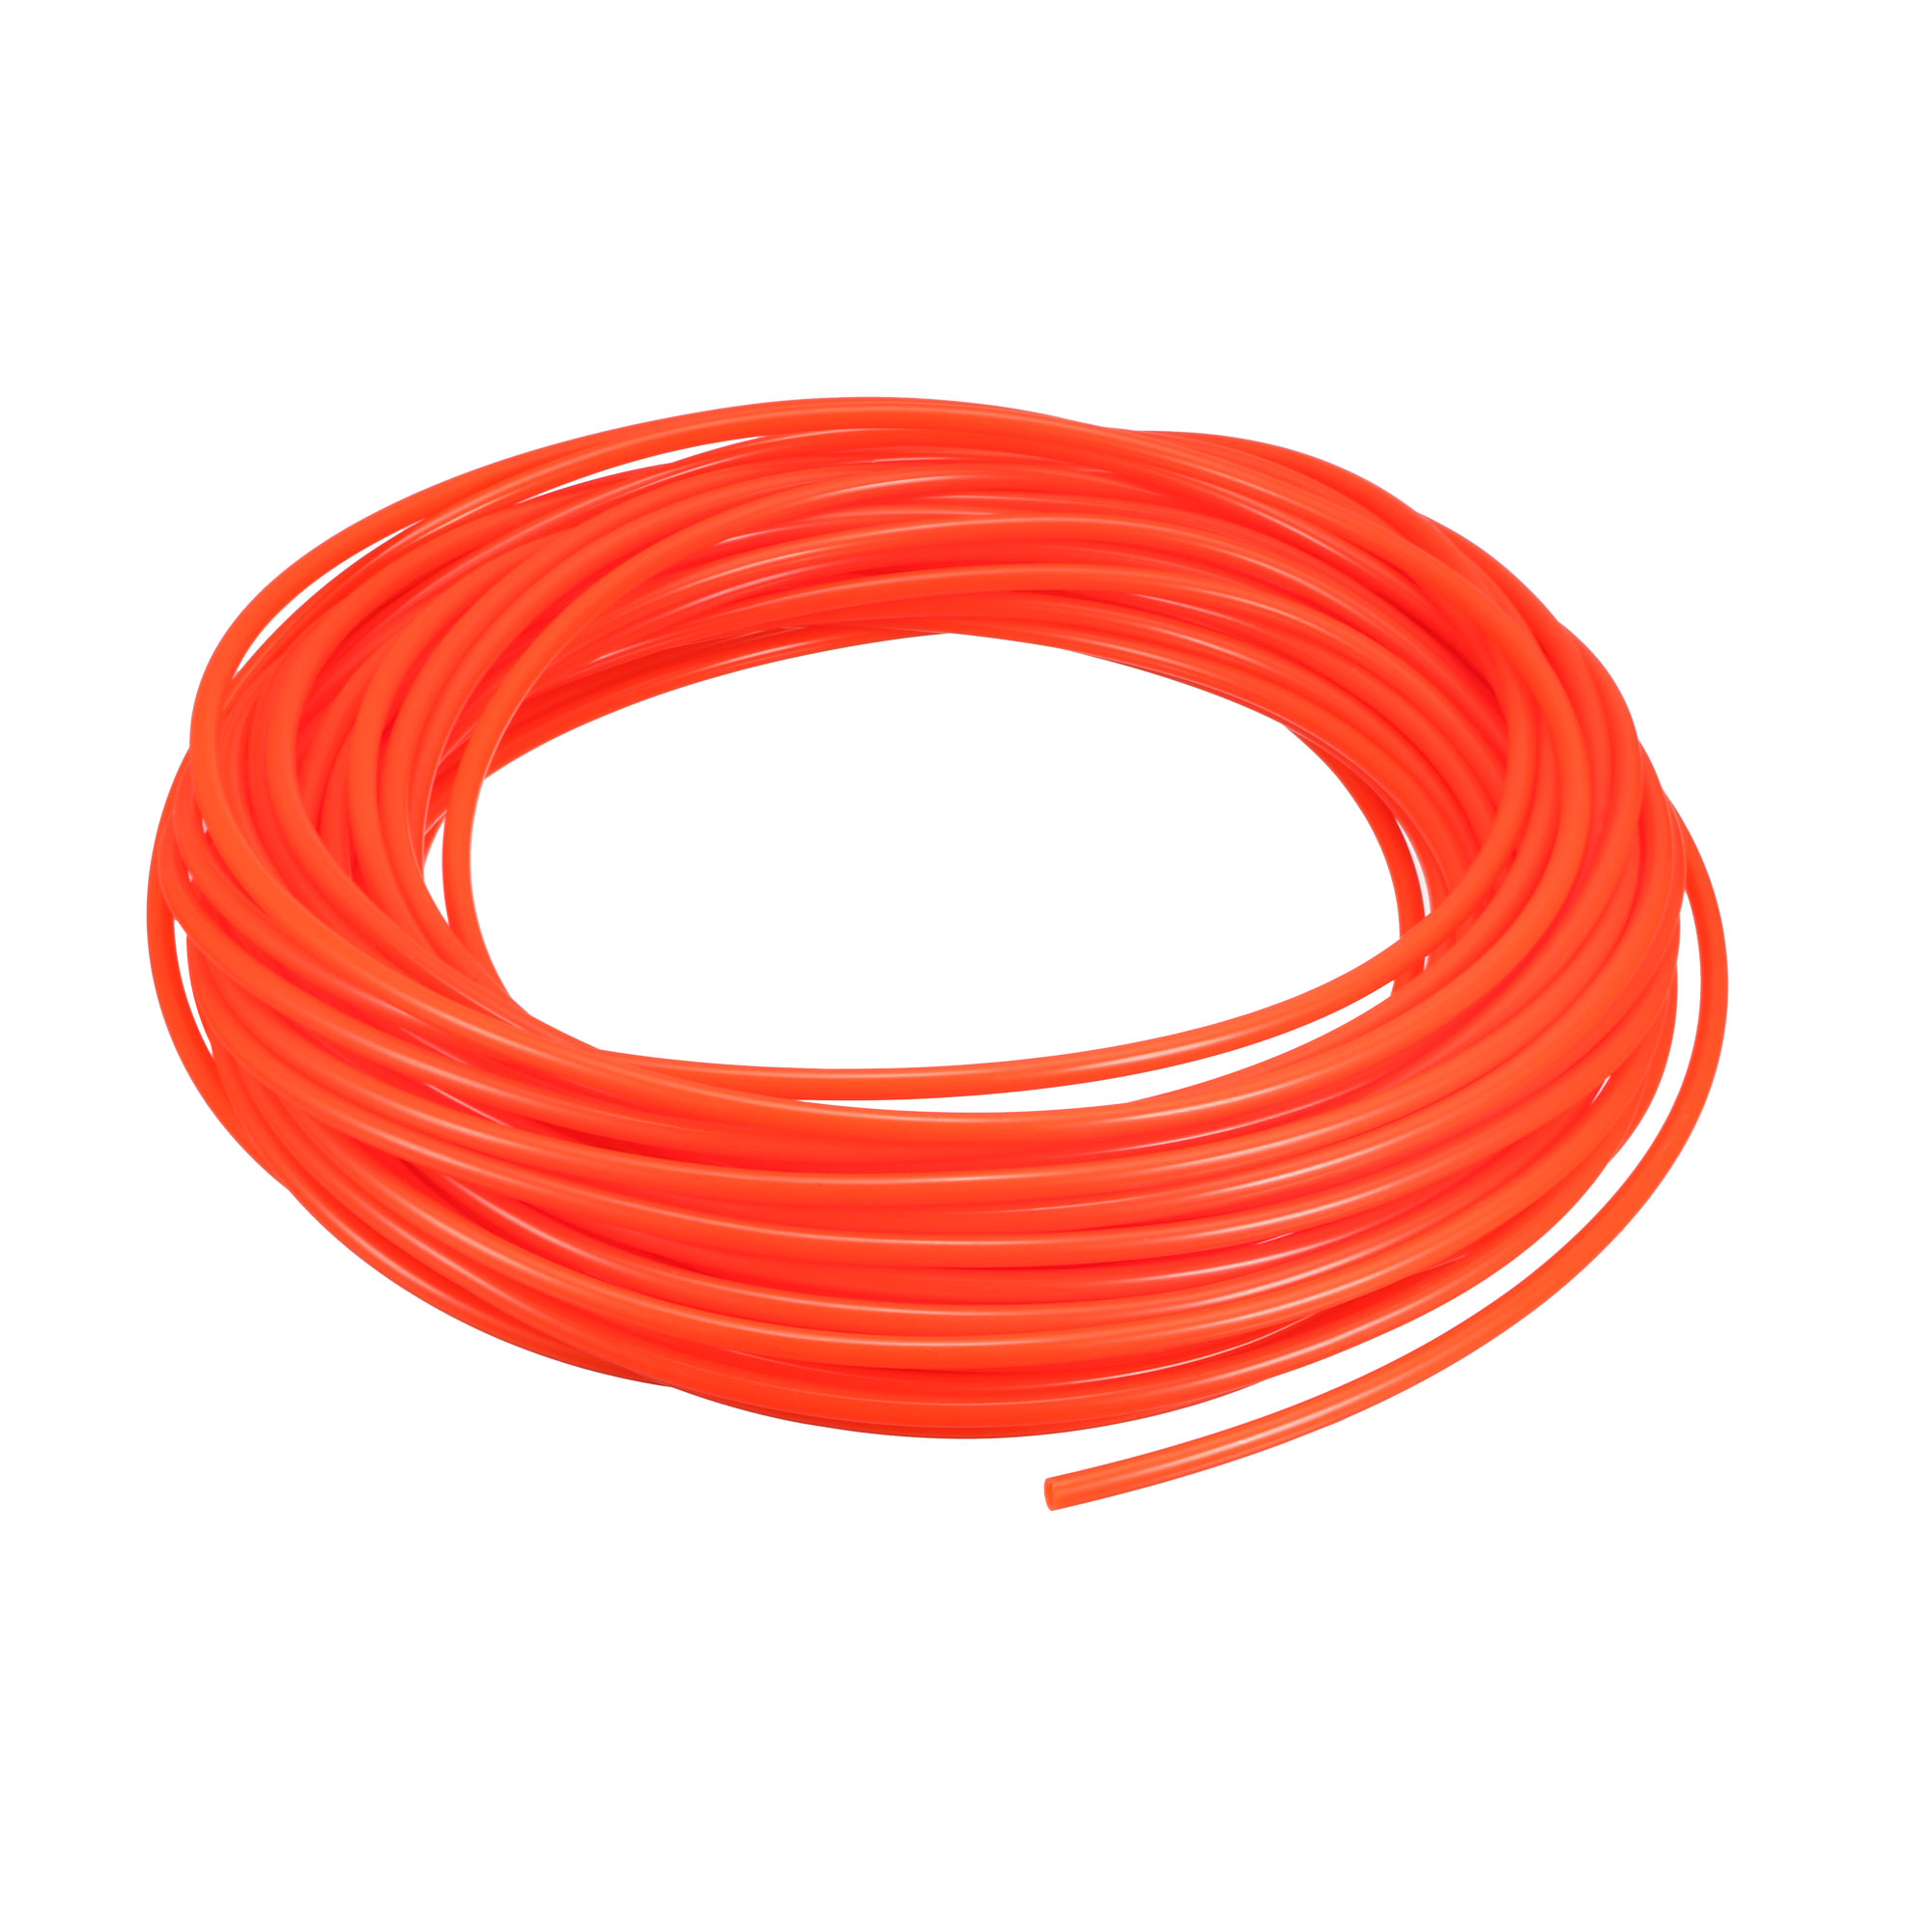 Polyurethane PU Air Tube Tubing Pipe Hose Orange 20M Length 4mm x 2.5mm Dia